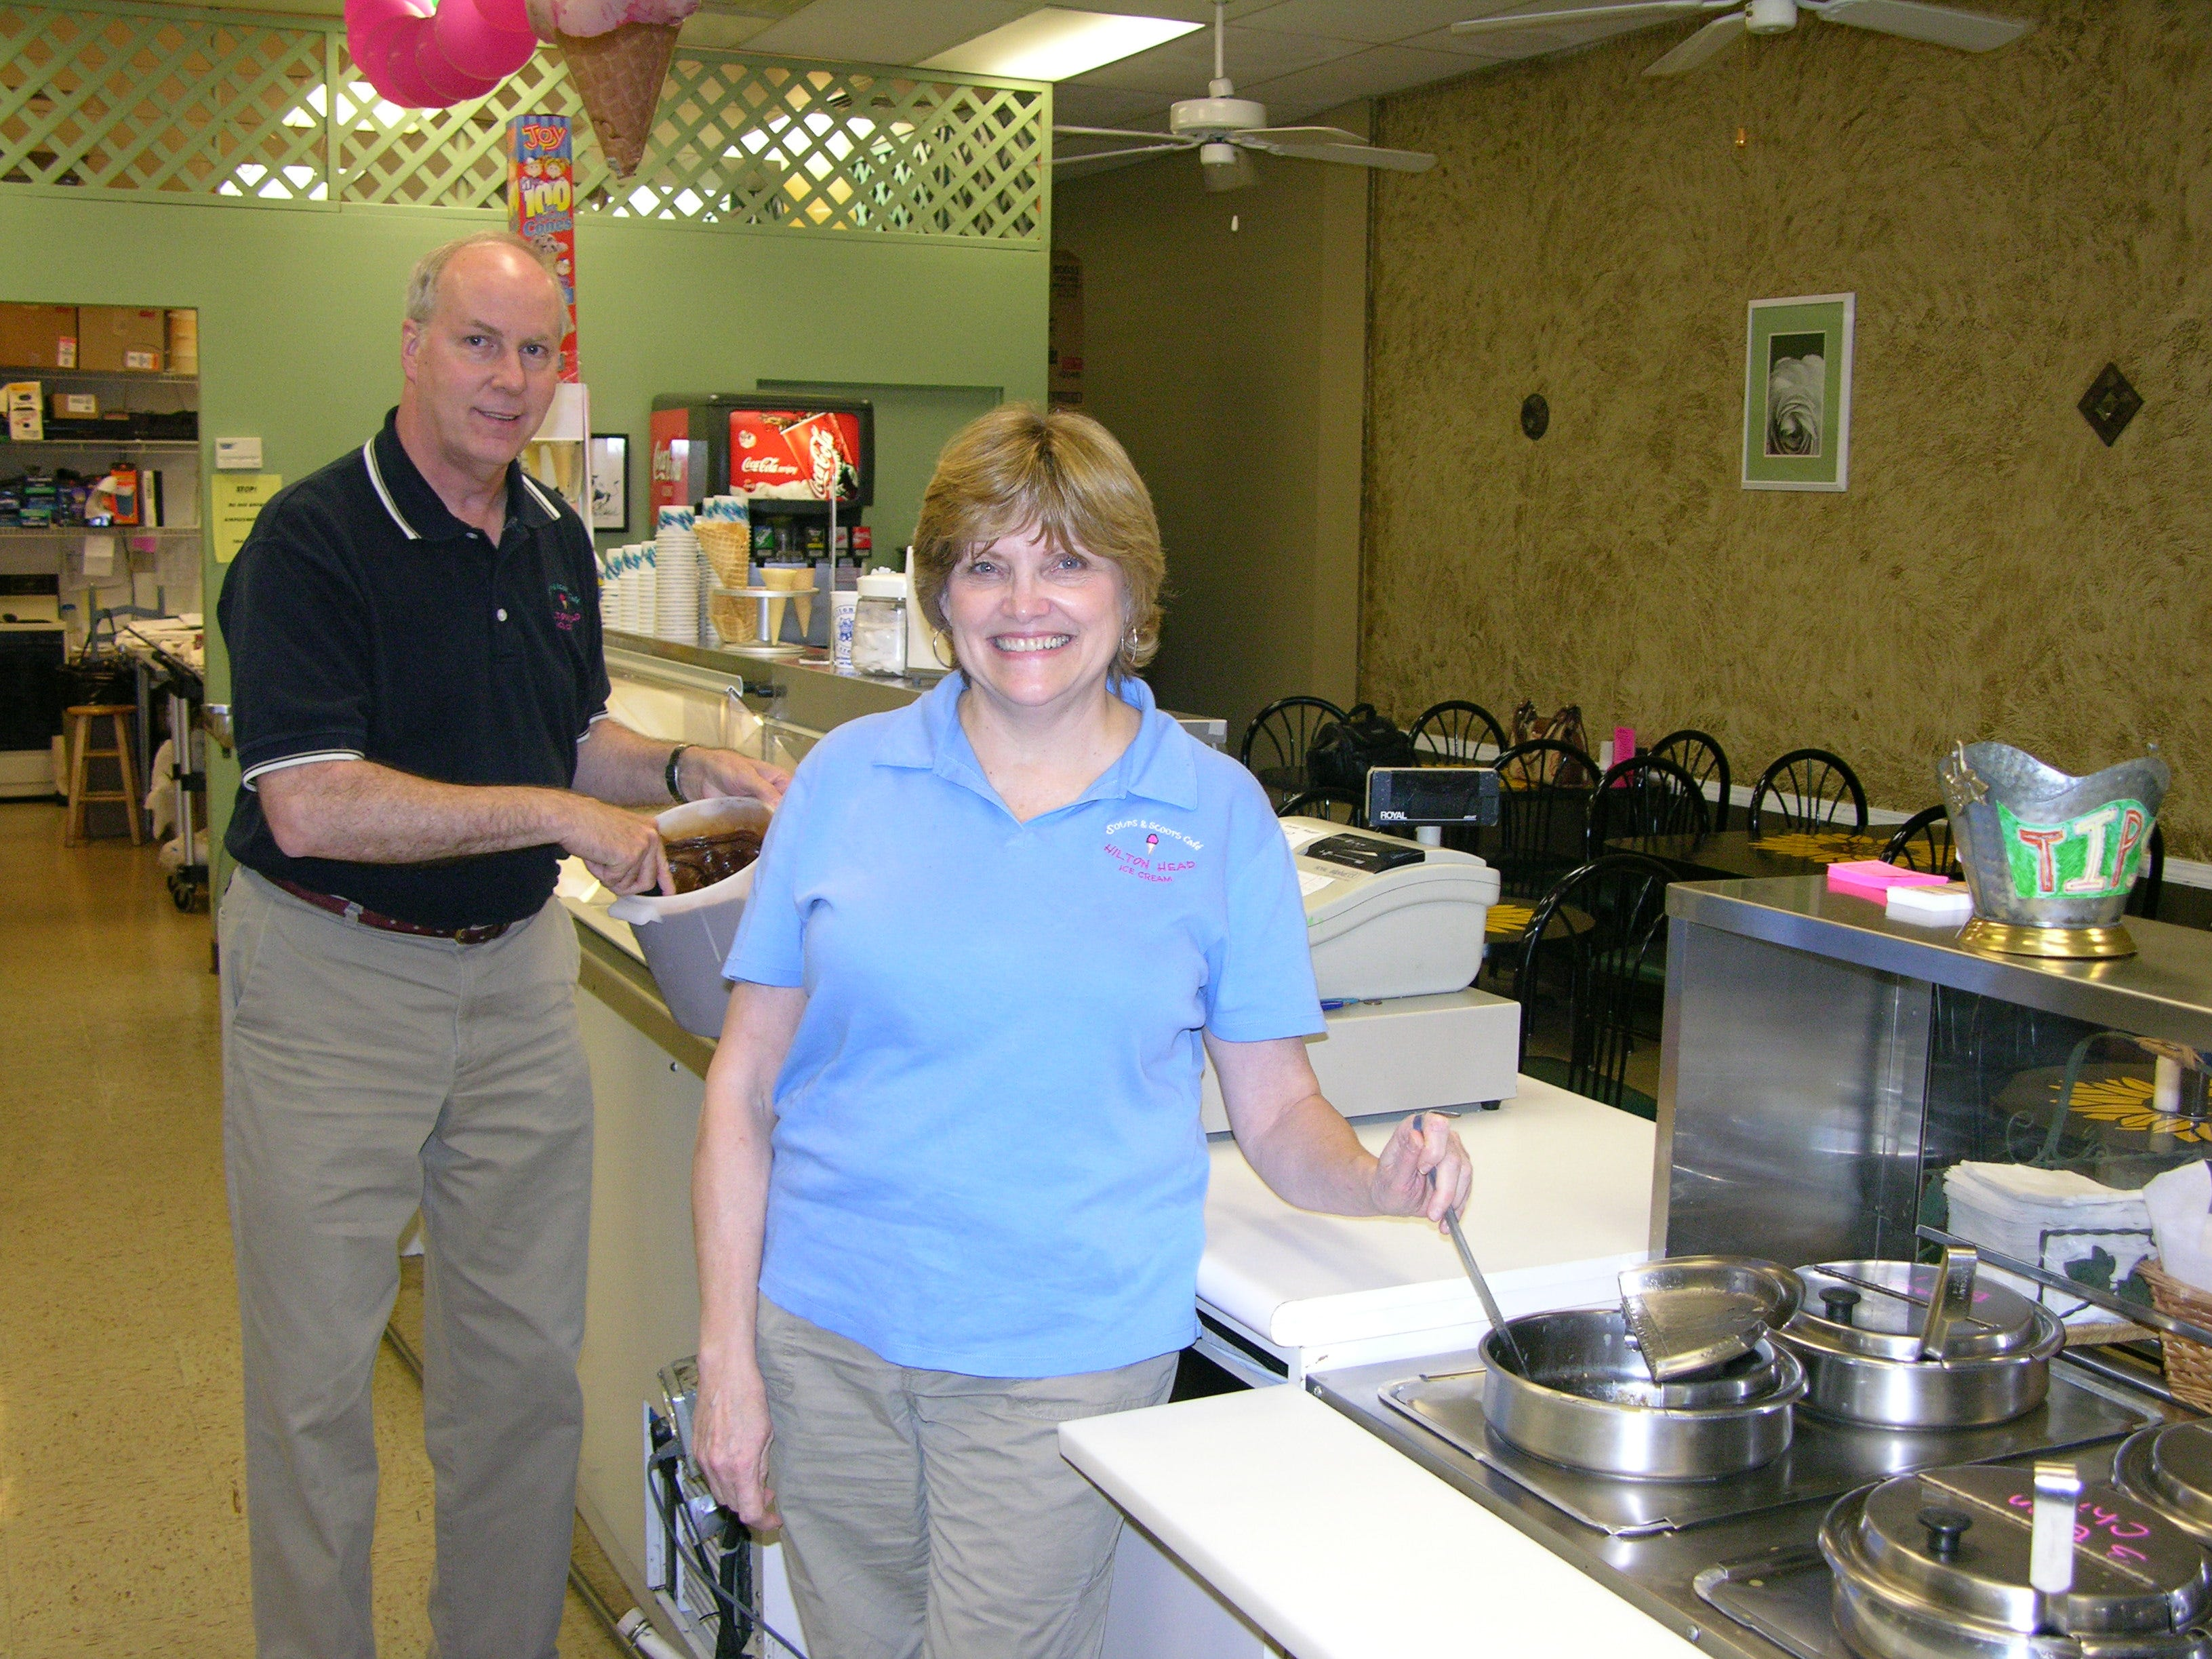 in 2007, Soups & Scoops CafŽ owner Rachel Wilkinson stirs a pot of one her homemade soups while hubby Ron Wilkinson, who serves as ice cream manager, dips into one of the more than 40 flavors of handmade ice cream and sorbet the restaurant offers.